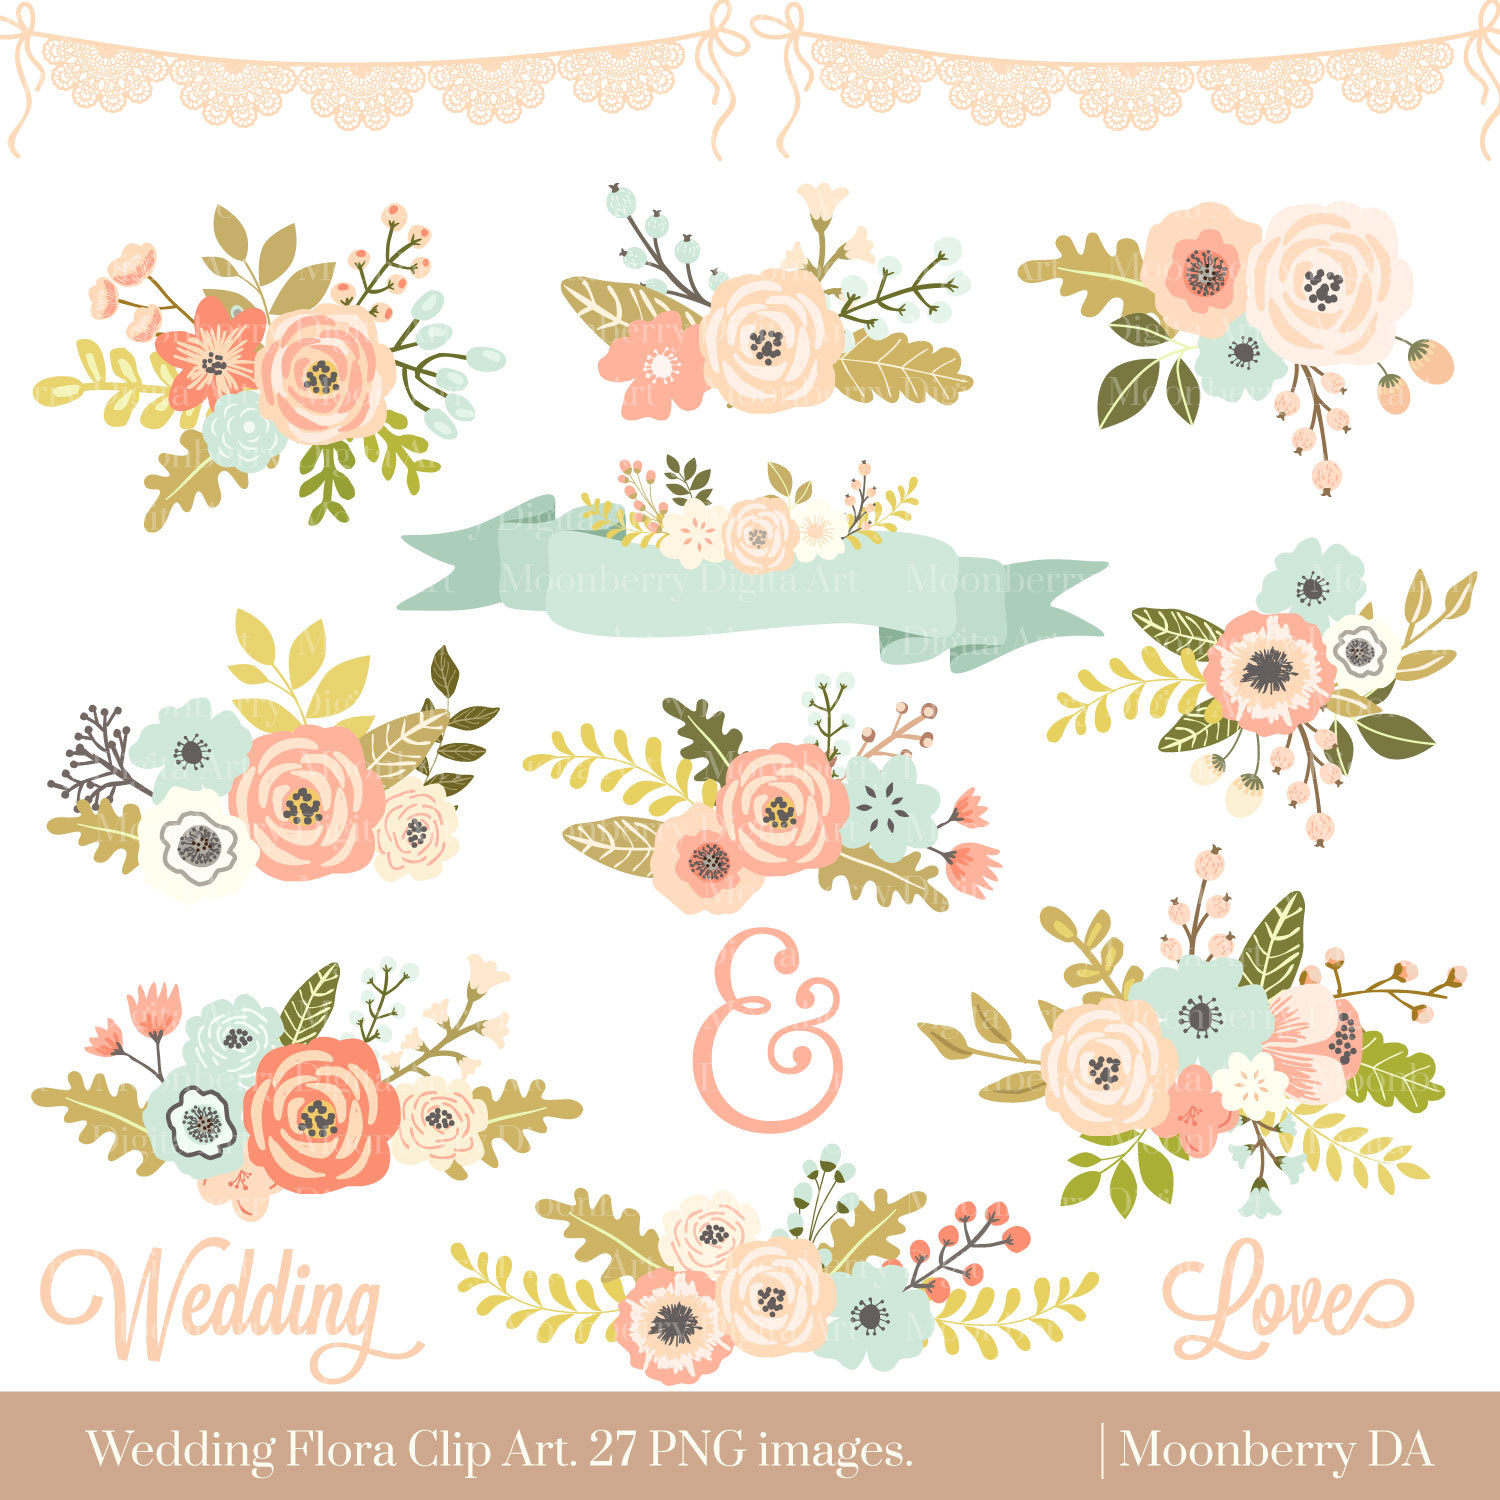 Floral images clipart svg free library Floral Clip Art & Floral Clip Art Clip Art Images - ClipartALL.com svg free library